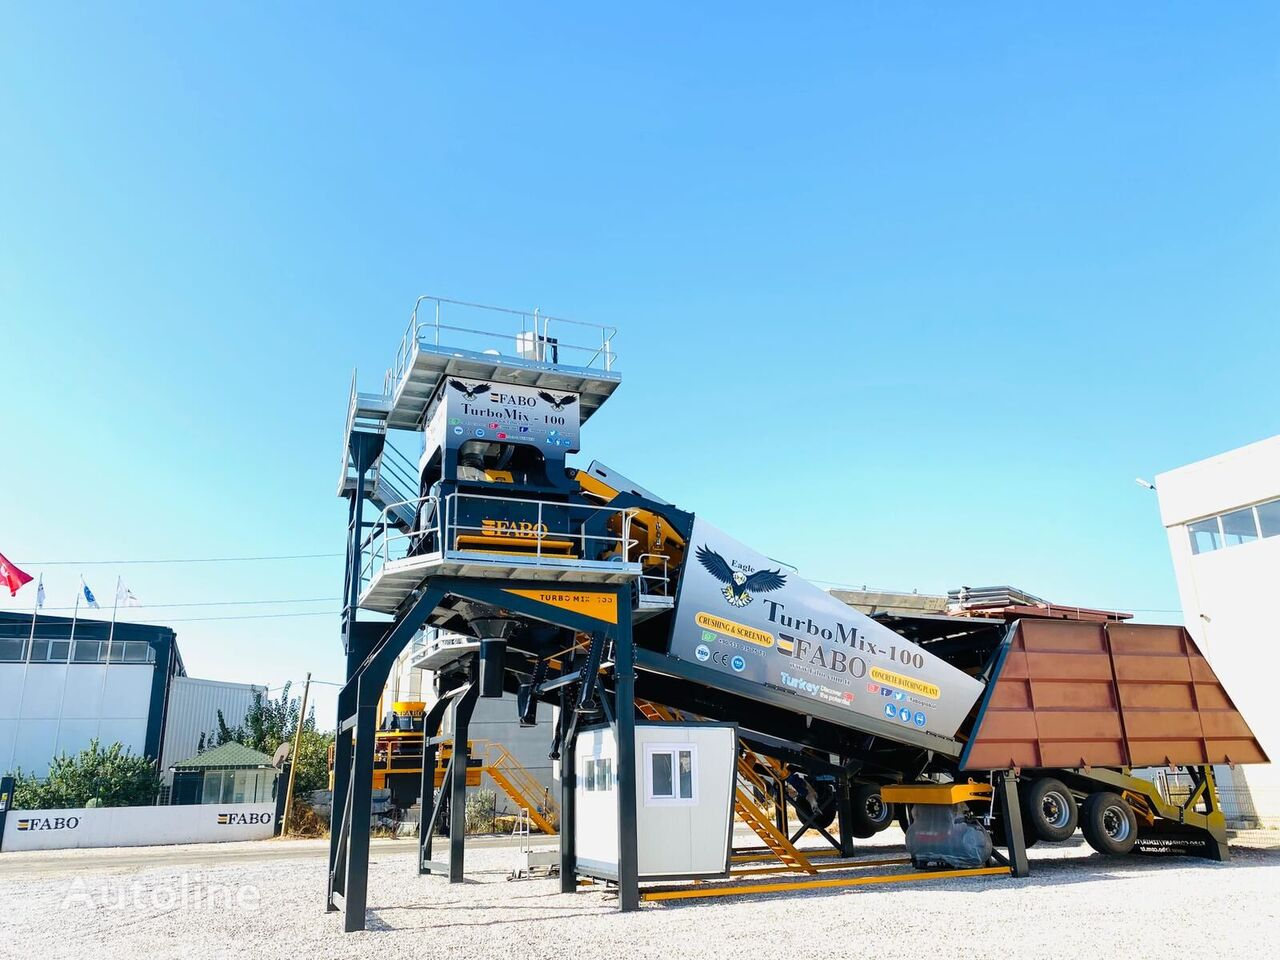 new FABO TURBOMİX 100 CE QUALITY NEW GENERATION MOBILE CONCRETE MIXING PL concrete plant